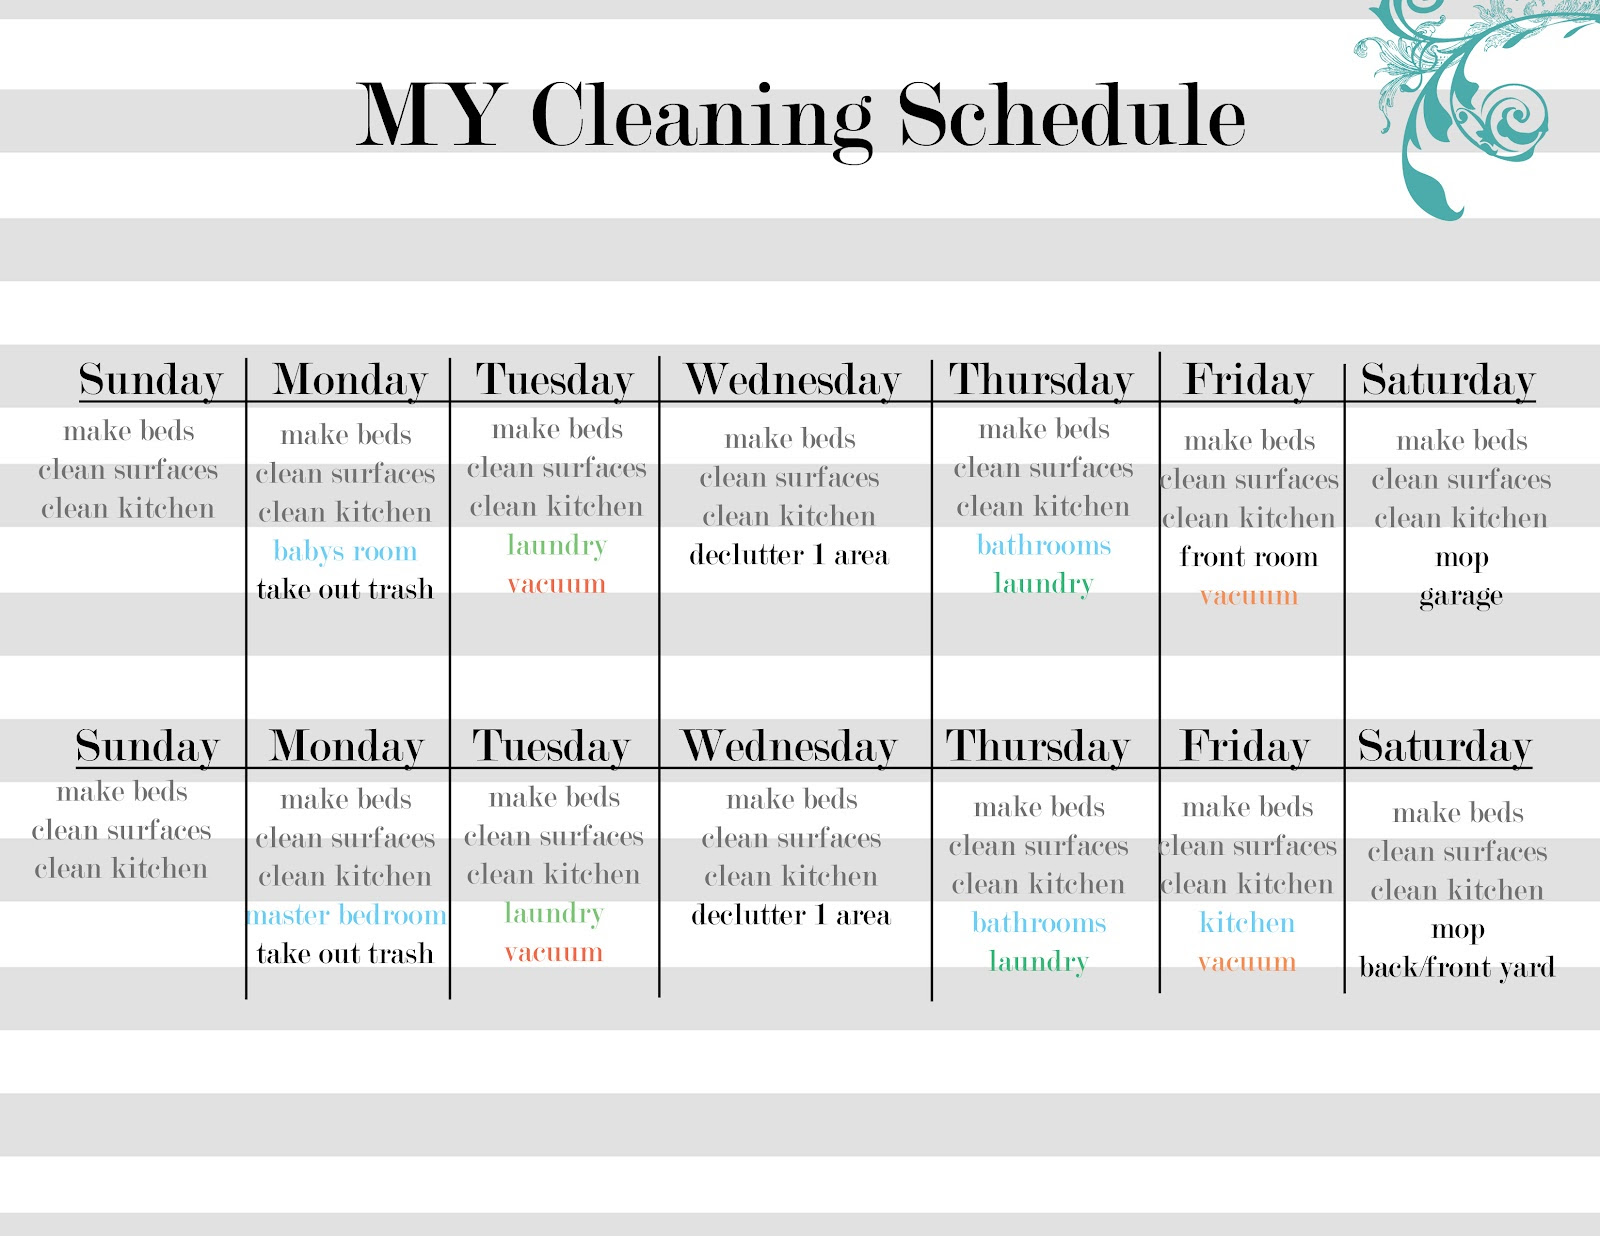 Daily House Cleaning Schedule - Apk Downloader